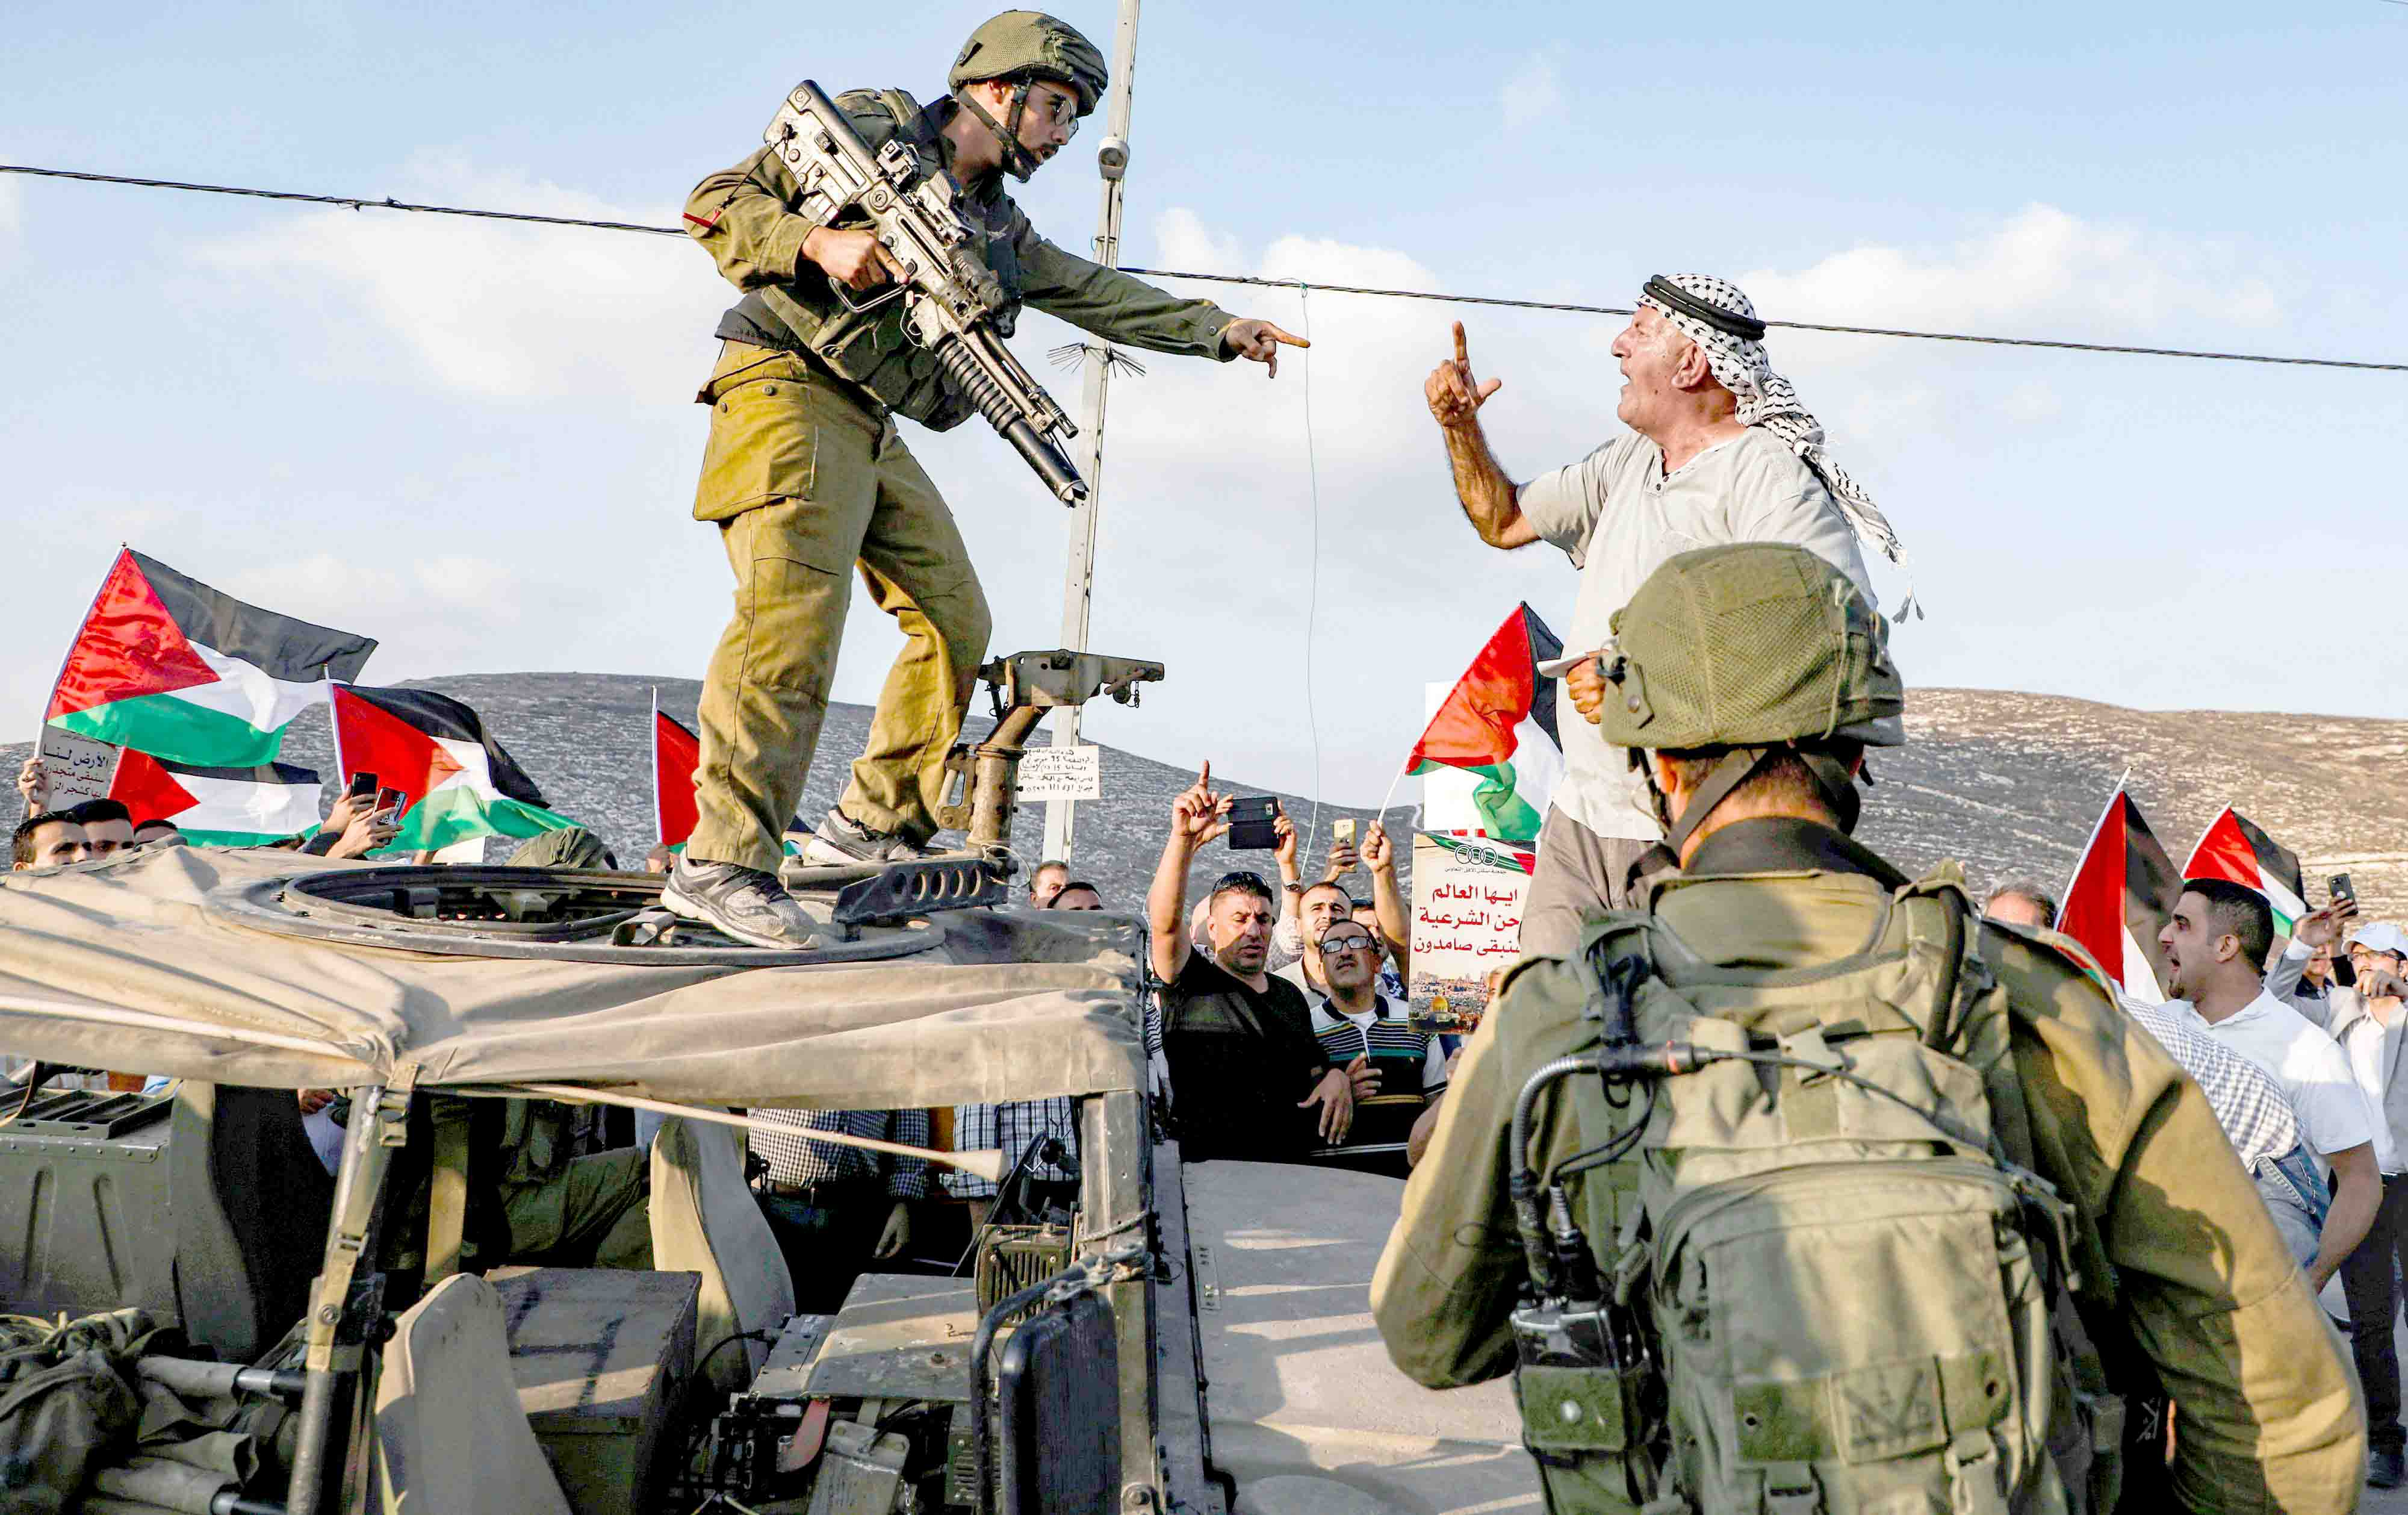 A Palestinian protester yells at an Israeli soldier during a protest in a residential area near the Palestinian village of Naqura, north-west of Nablus in the occupied West Bank, September 4. (AFP)